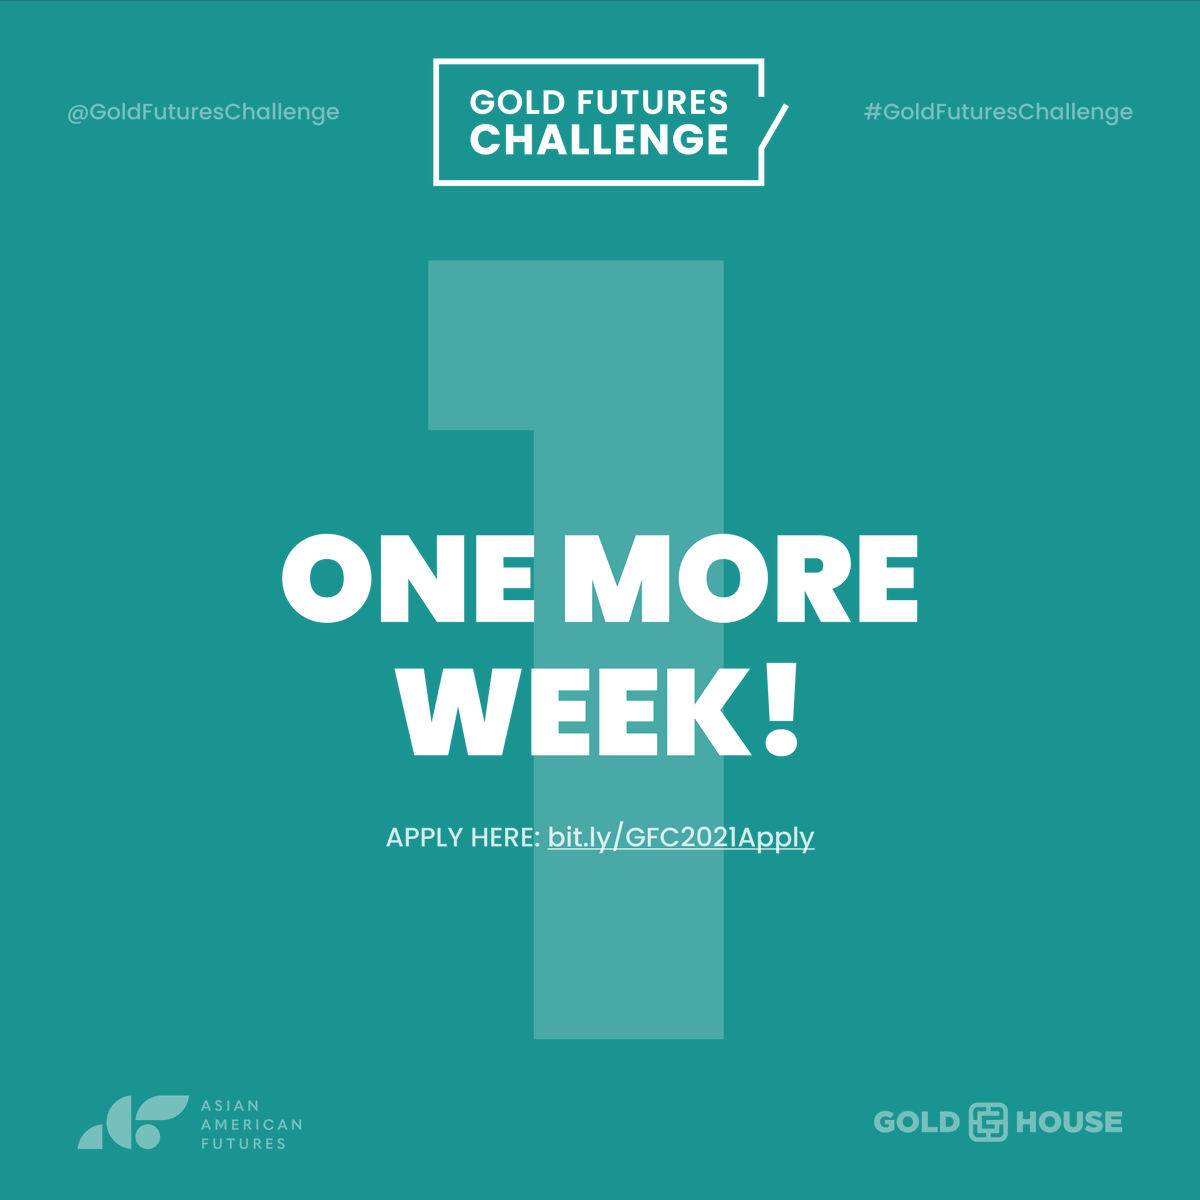 We're a proud partner of the #GoldFuturesChallenge, a grant making challenge that provides resources to #AAPI-serving organizations while increasing & democratizing philanthropy. Applications are due in a week. Apply today!  https://t.co/6LHwDJ90U1  @AAFutures @GoldHouseco https://t.co/DNUSgI9ICH